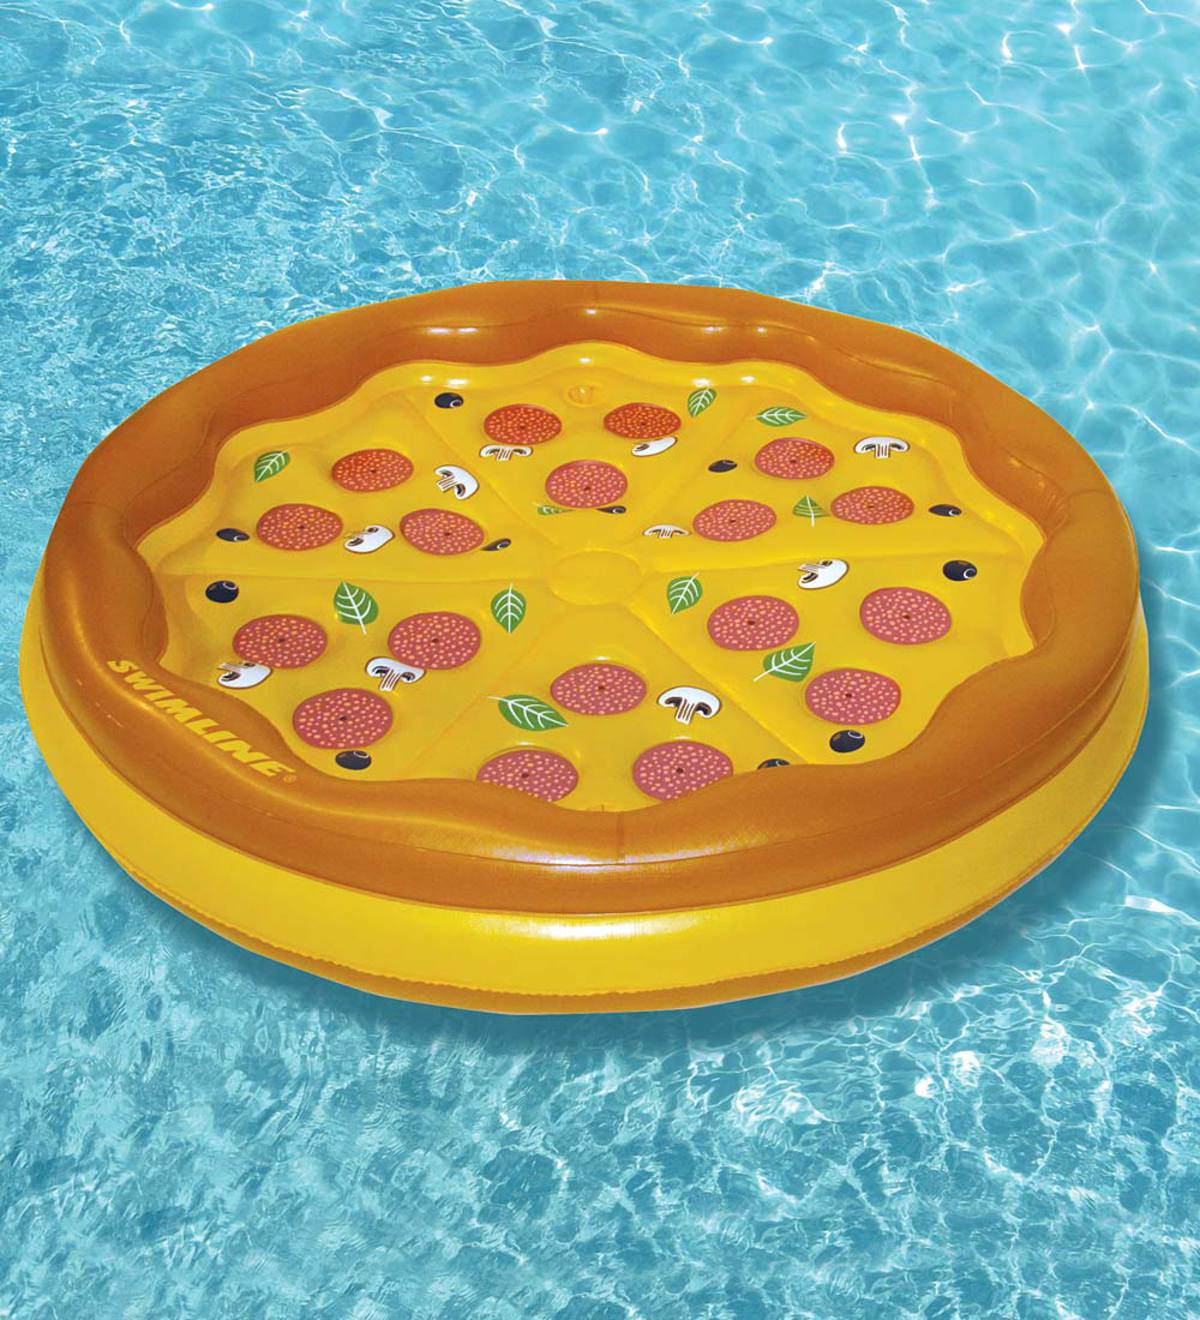 Personal Pizza Pie Island Float